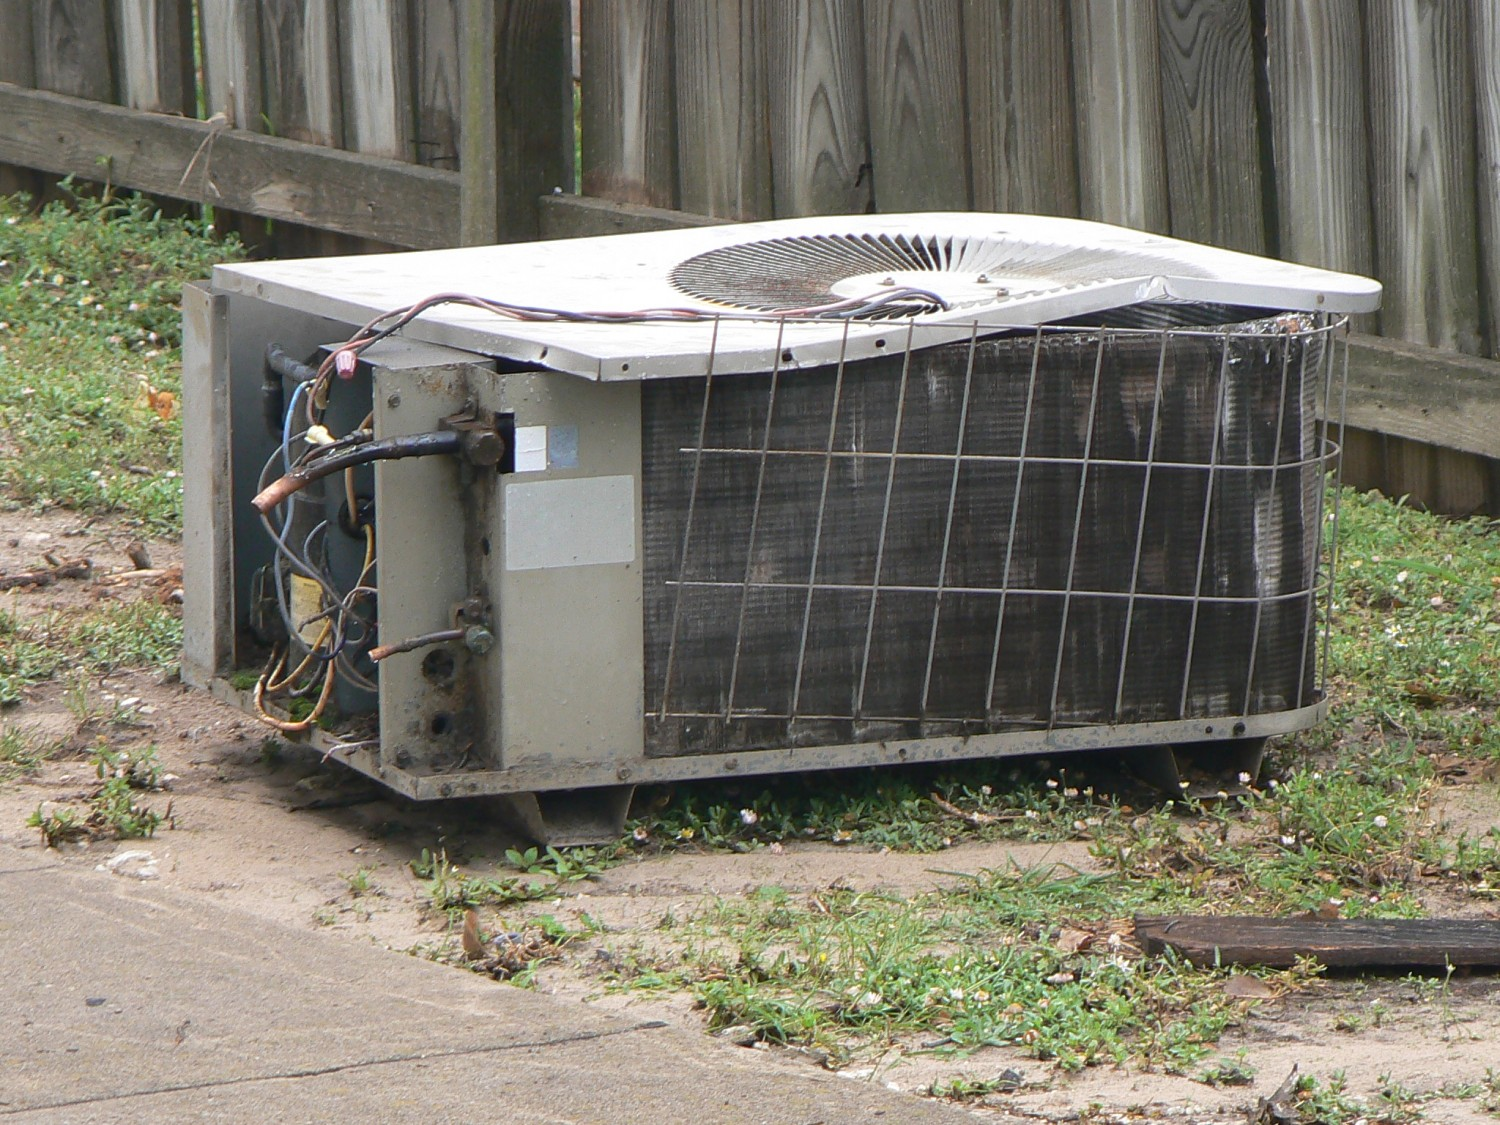 Our old air conditioner